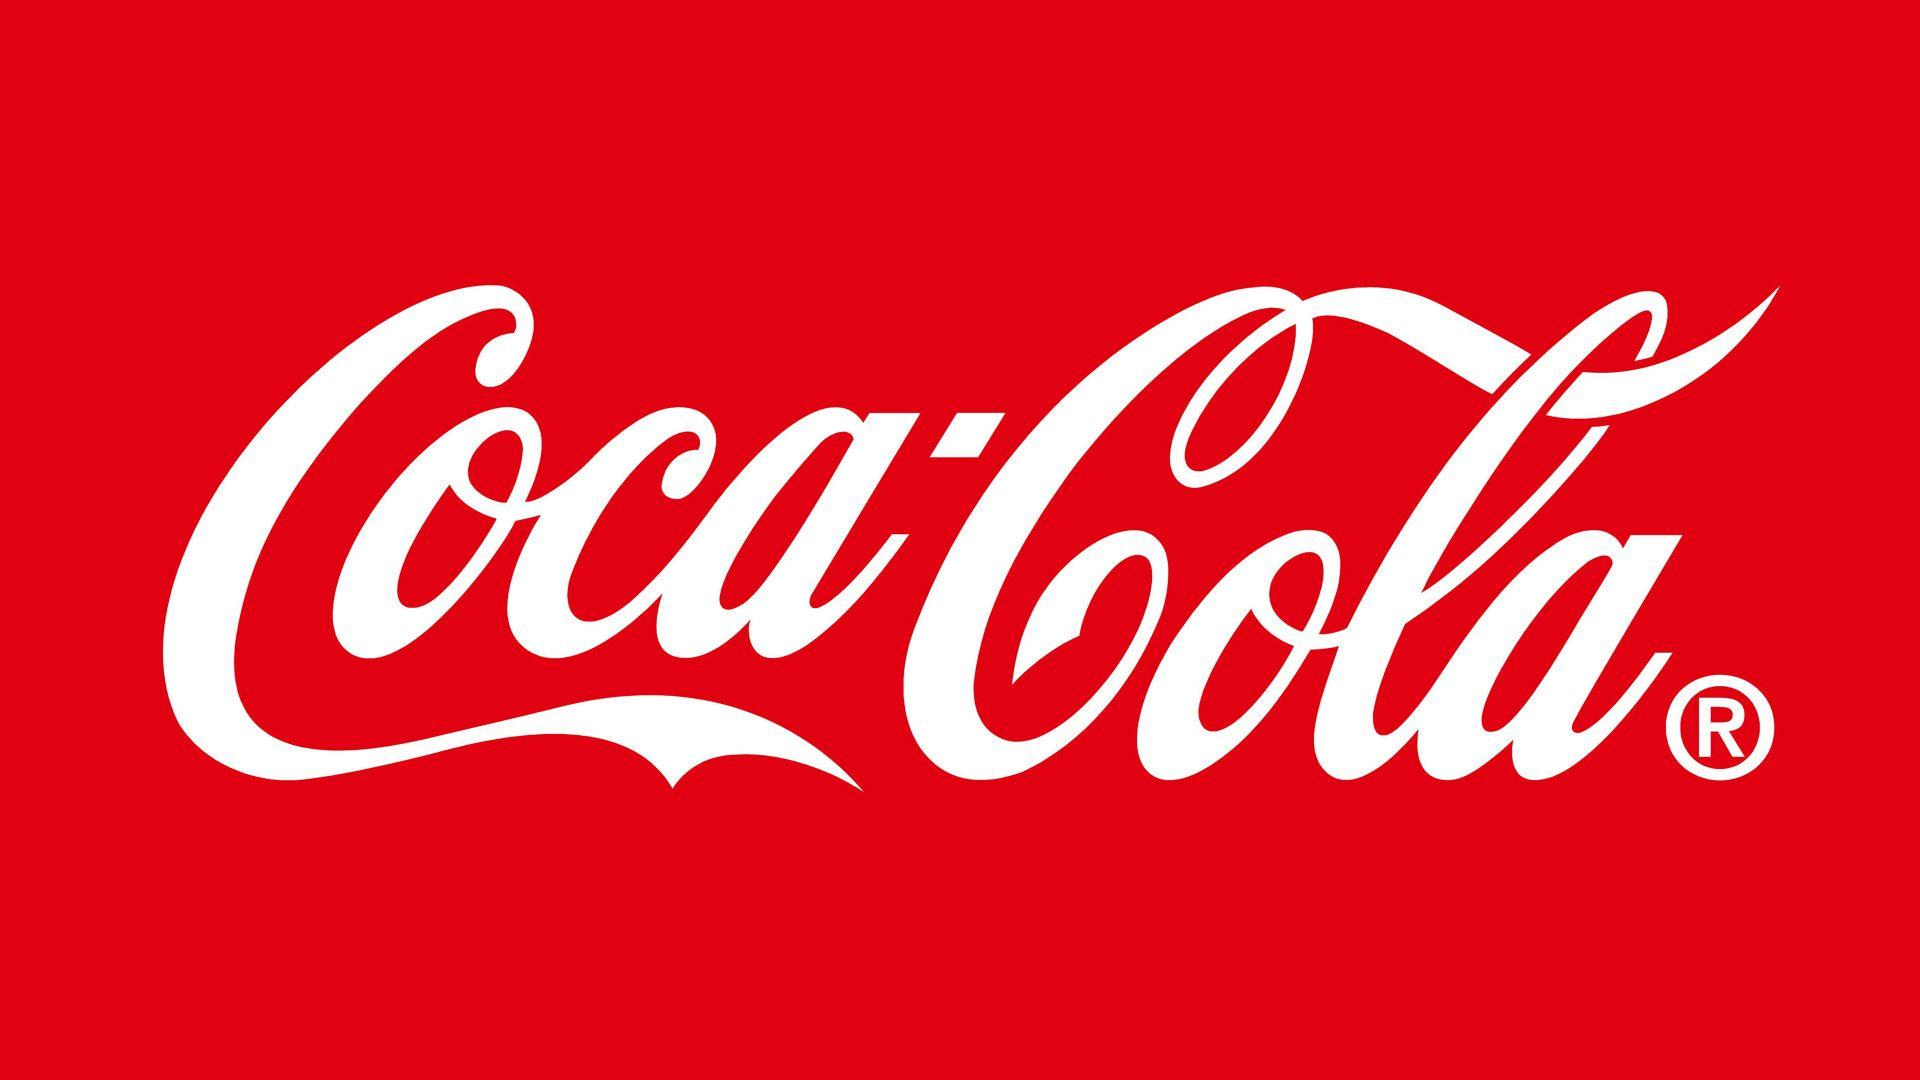 94 Coca Cola HD Wallpapers | Backgrounds - Wallpaper Abyss